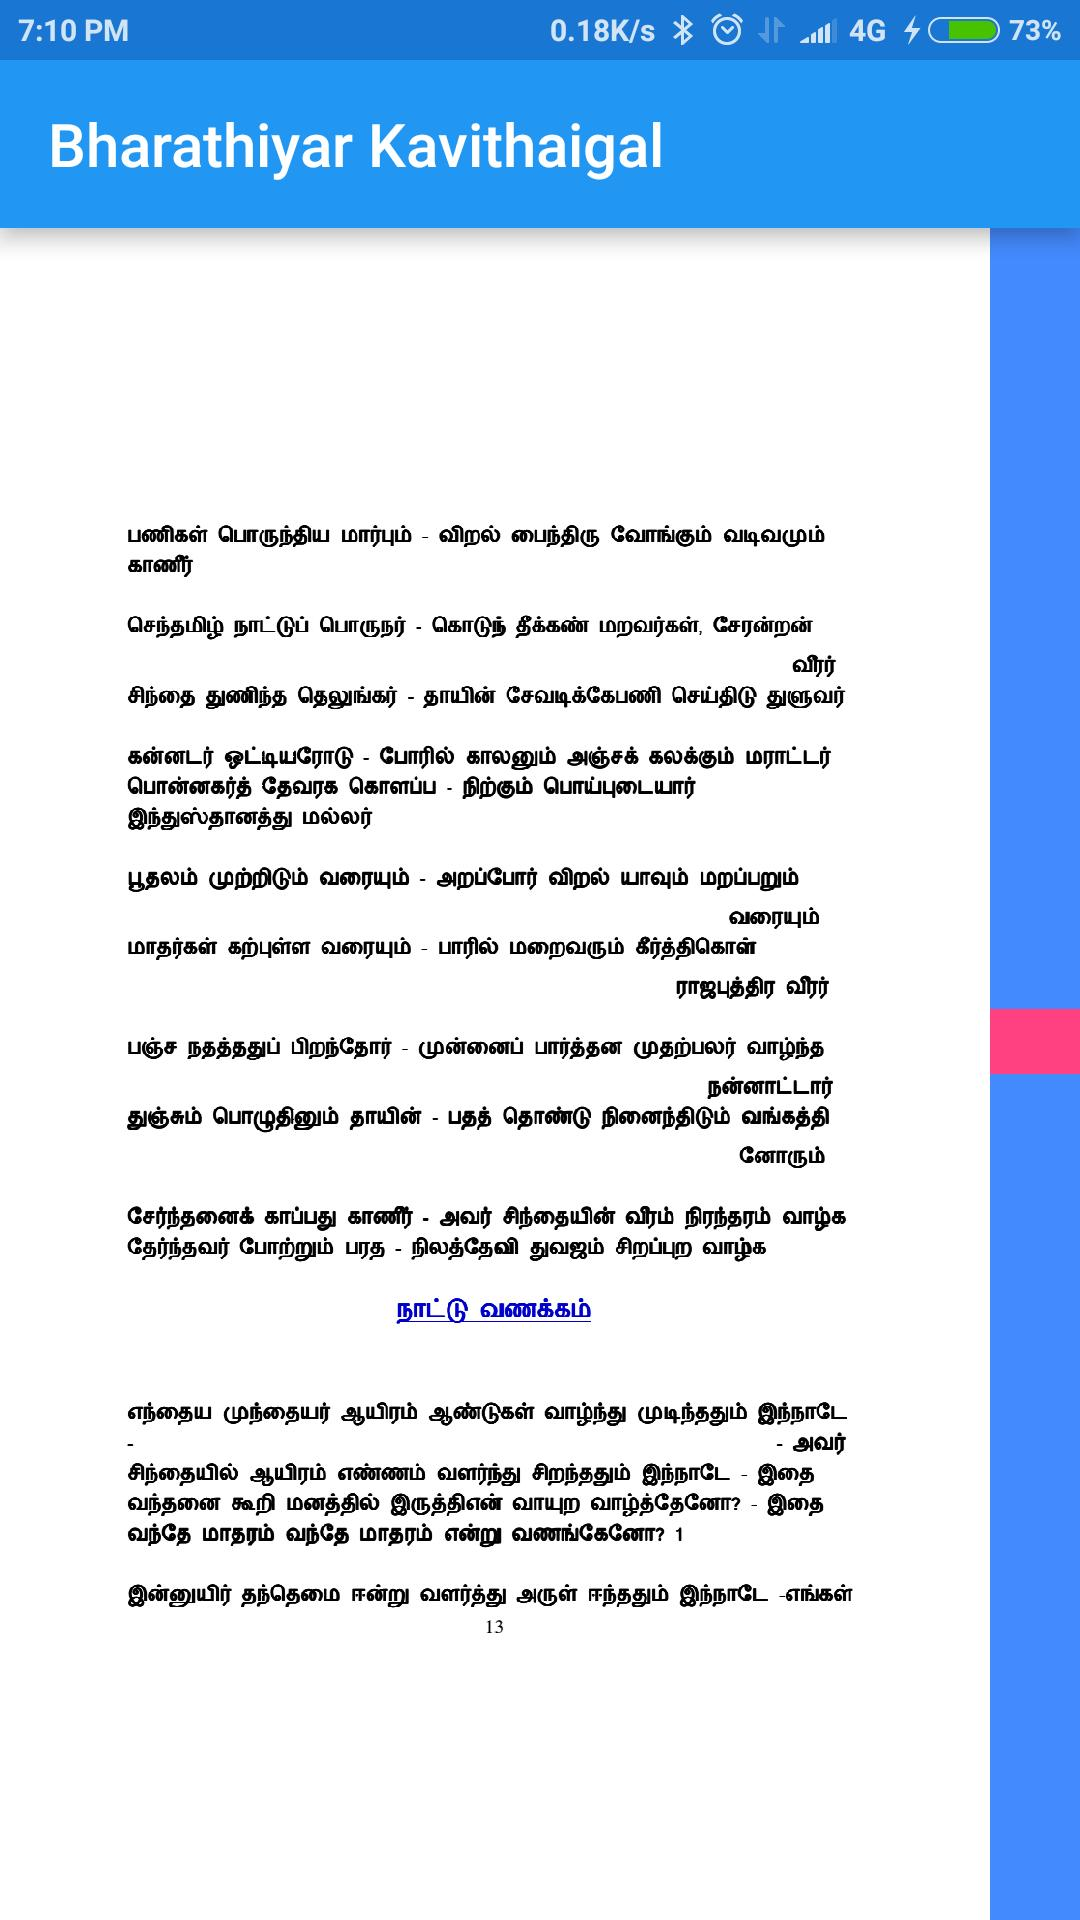 bharathiar kavithaigal tamil for Android - APK Download